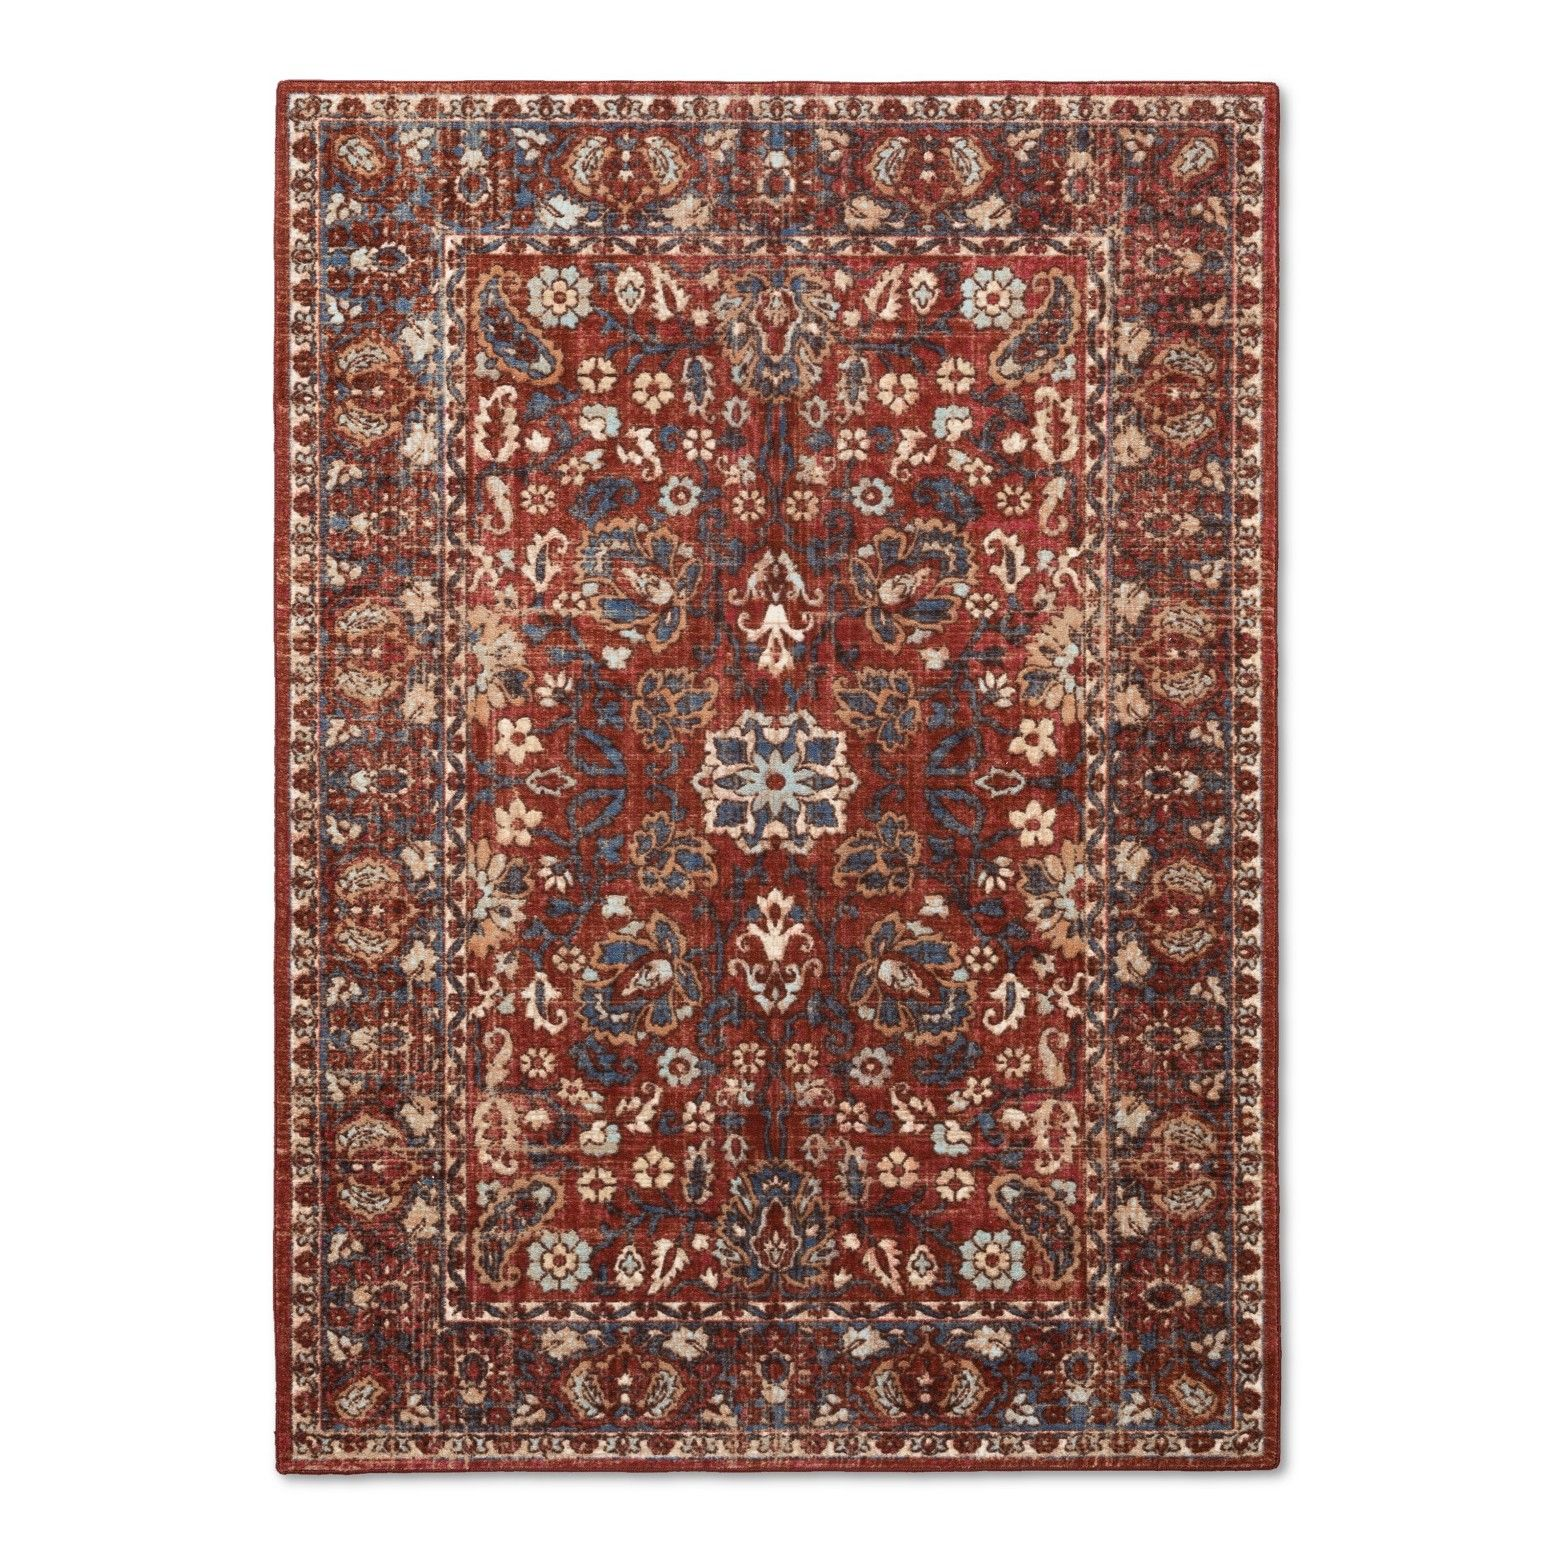 The Intricate Pattern Of Botanicals On Ava Rug From Threshold Is Stunning This Patterned